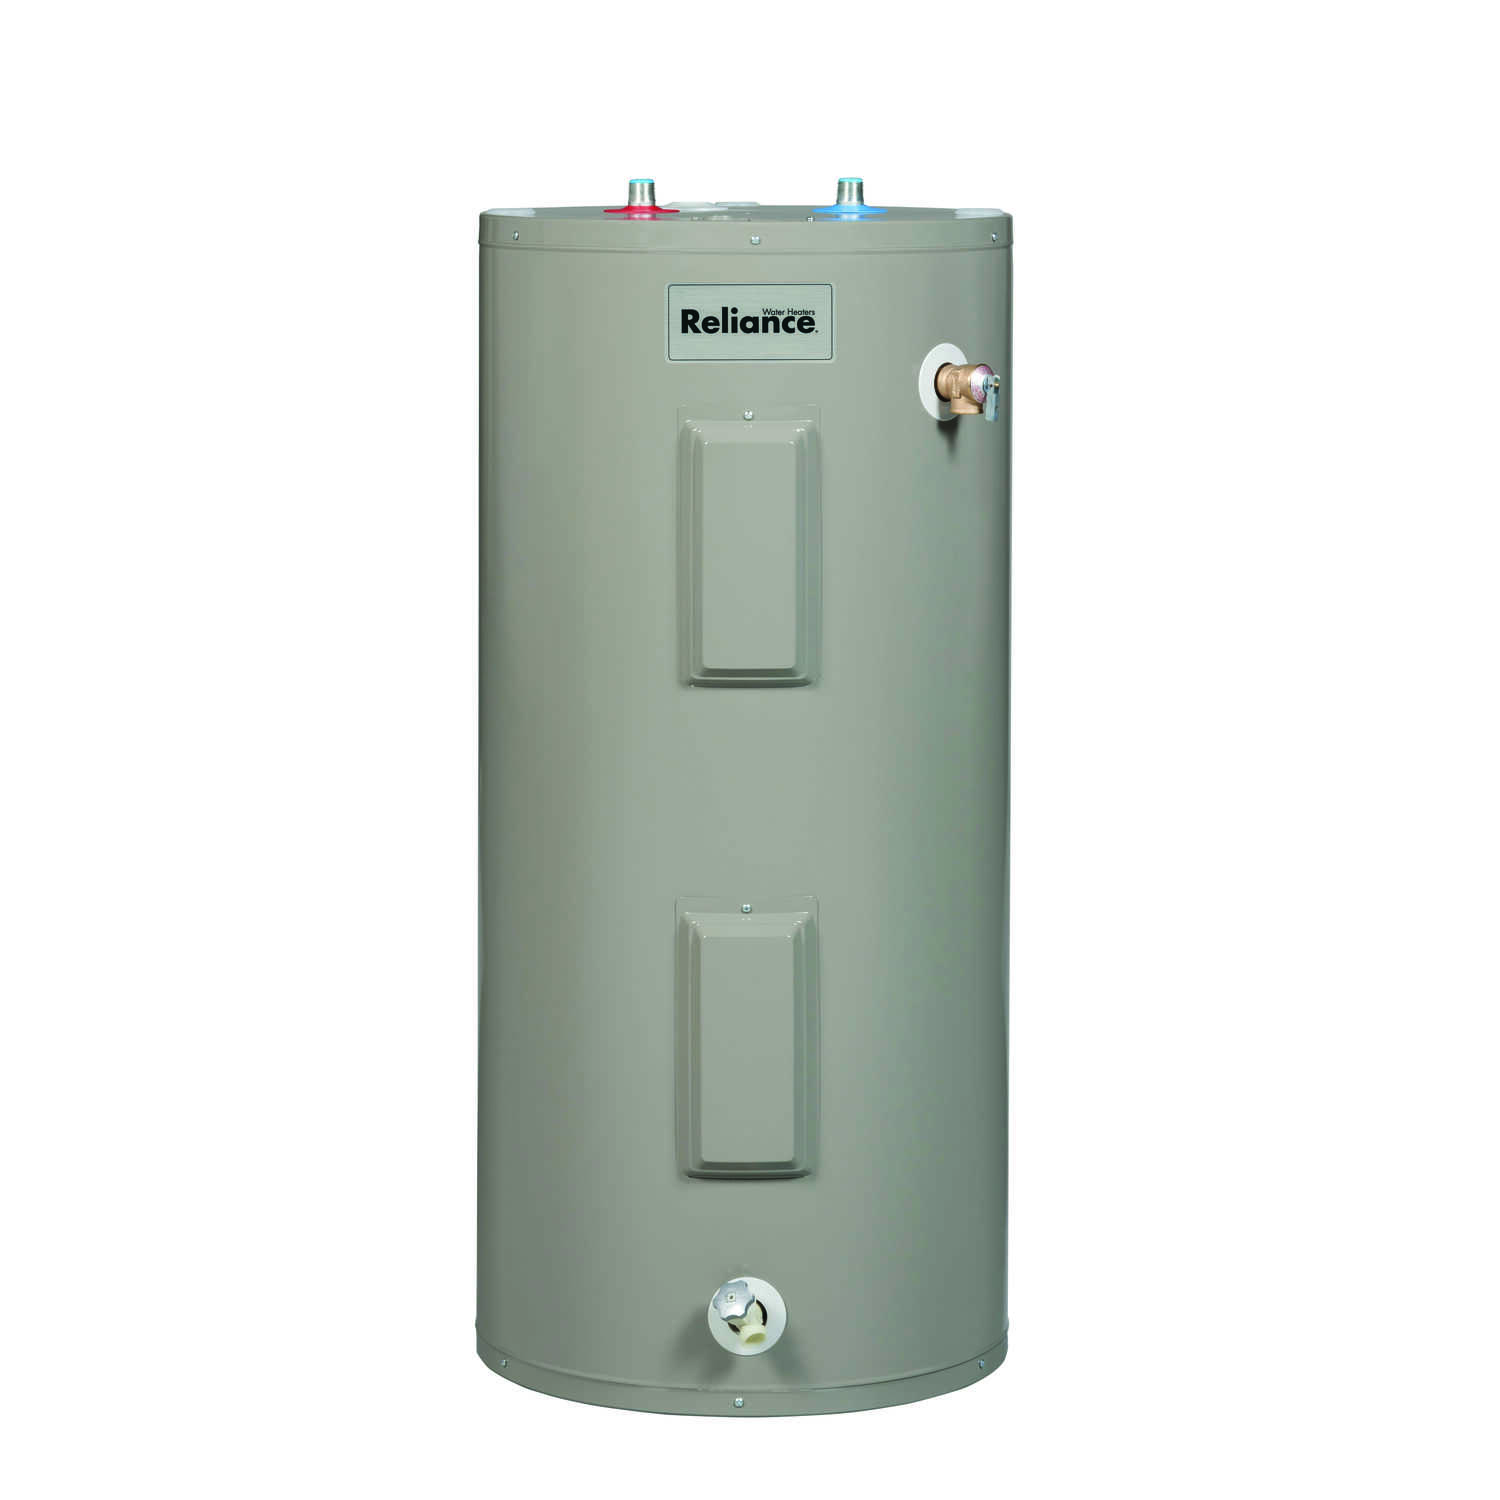 Reliance  Electric  Water Heater  50 in. H x 20-1/2 in. W x 20-1/2 in. L 40 gal.